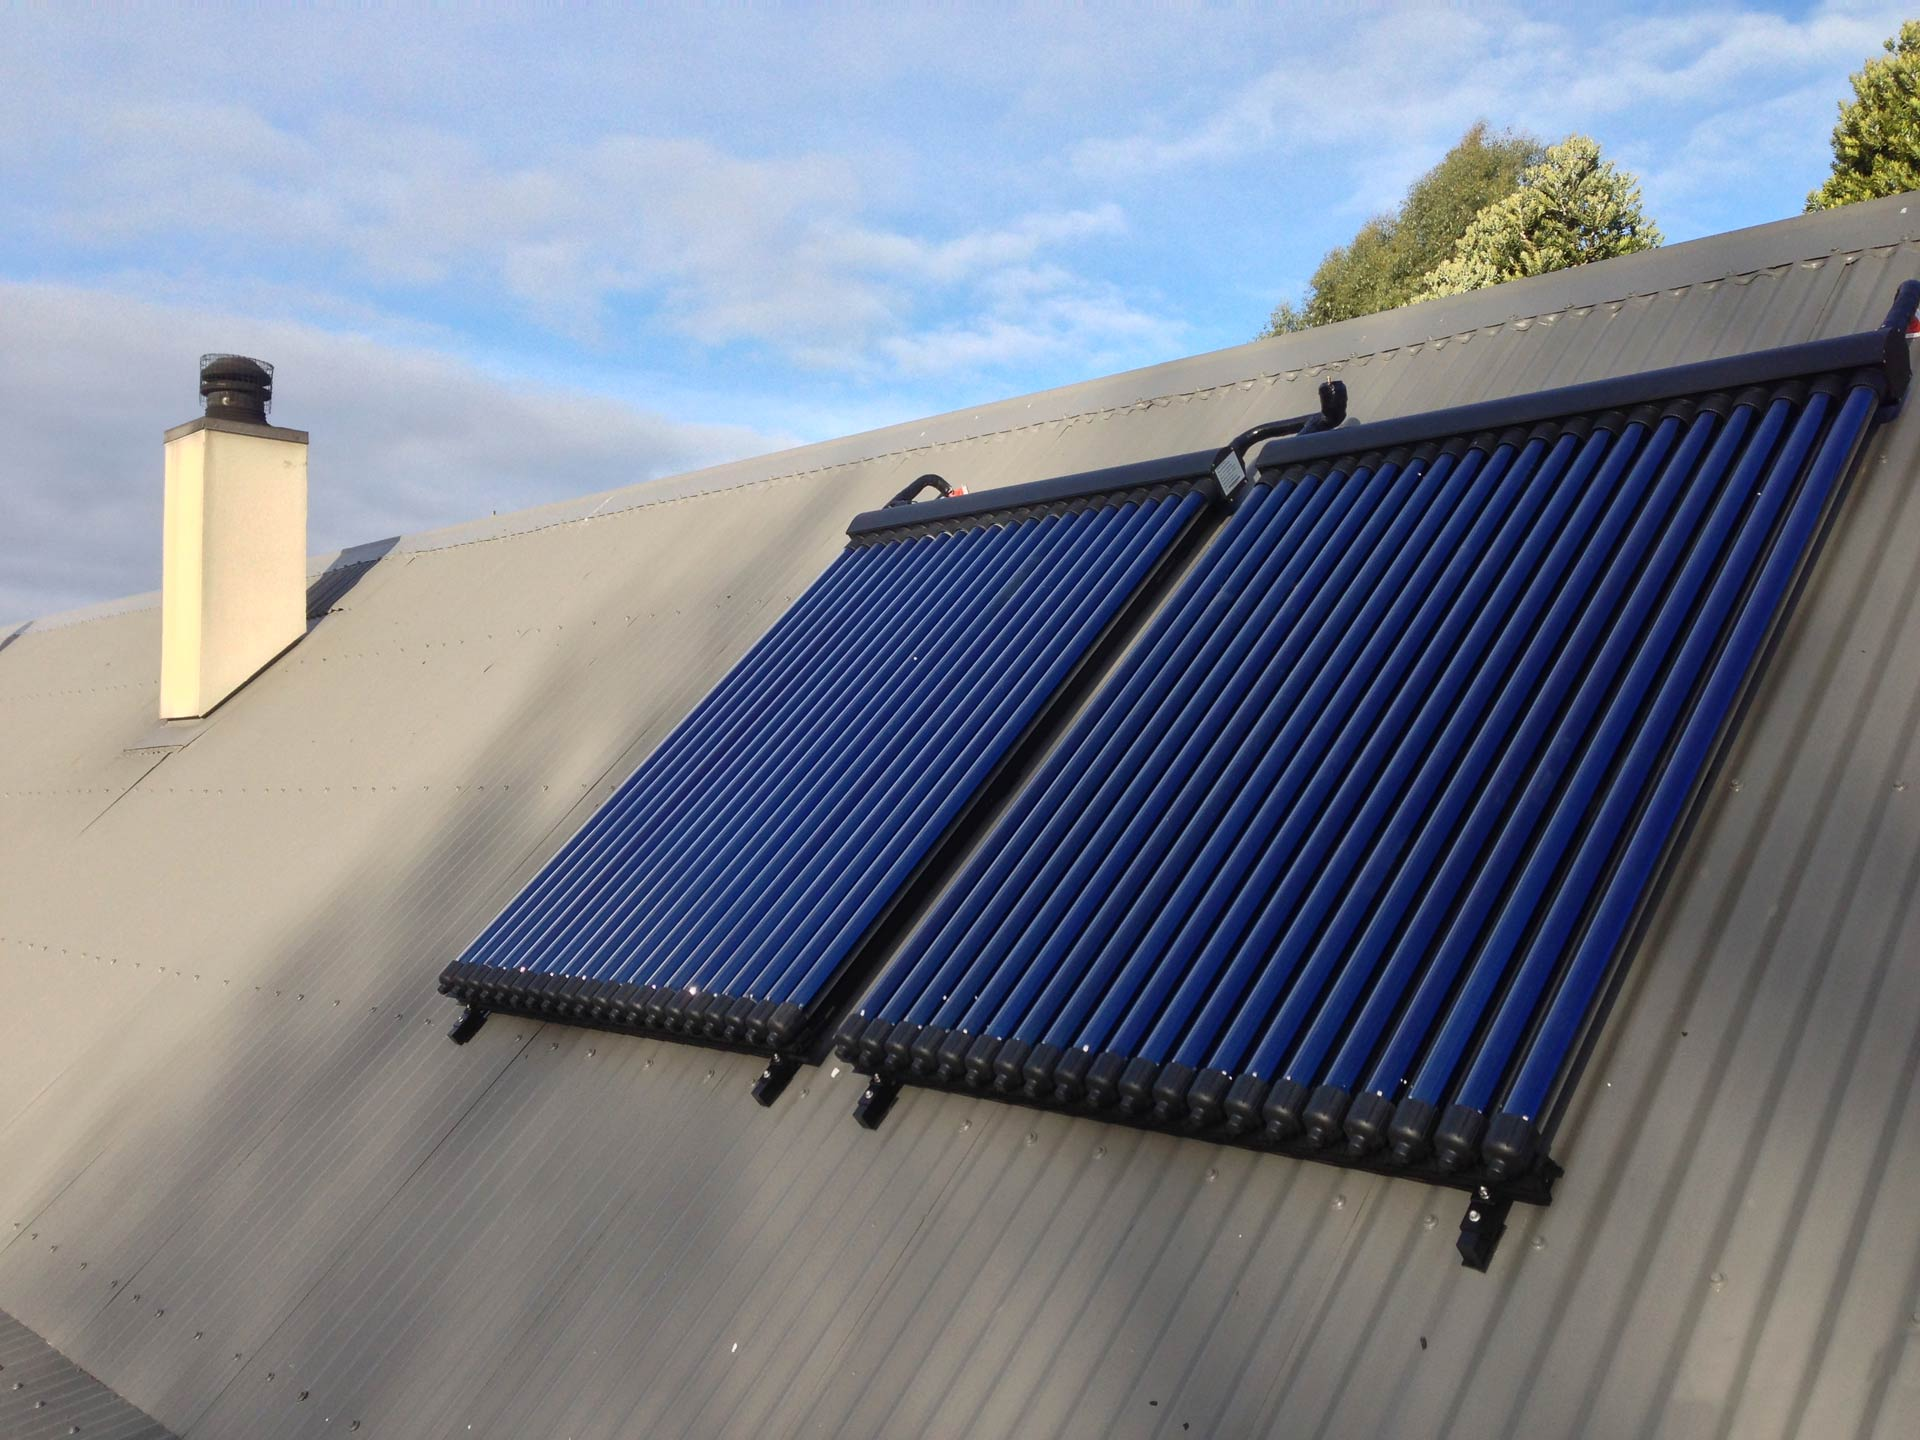 two solar panels on a steep roof